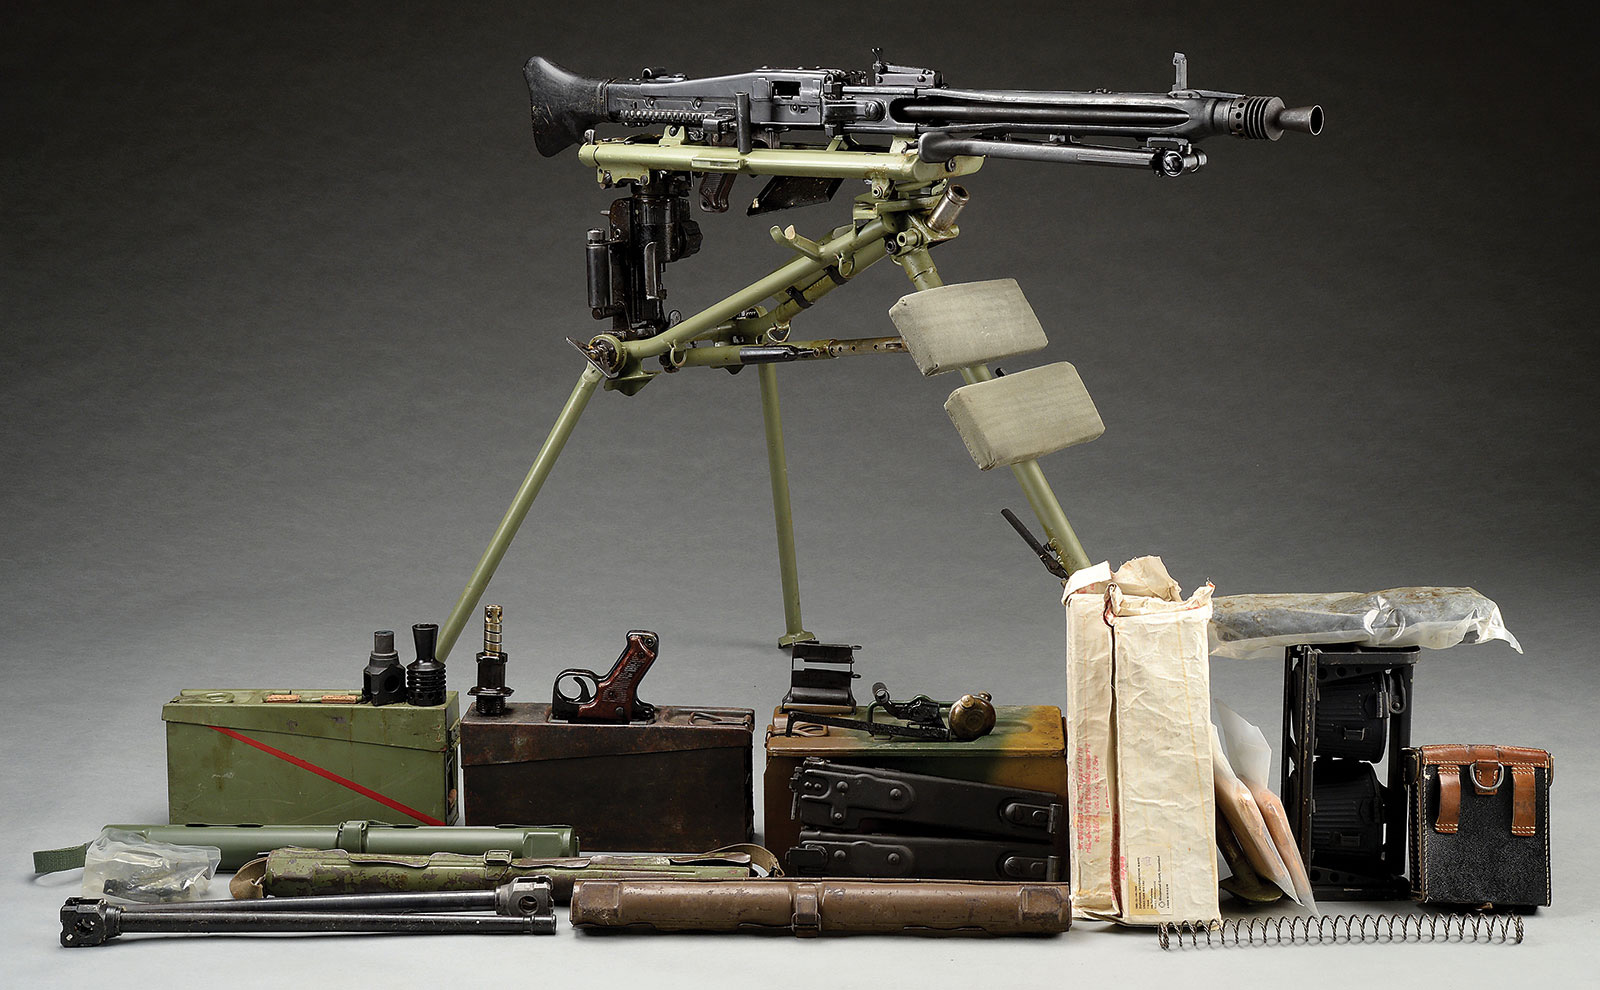 Mauser Manufactured WWII German MG42 Machine Gun on Lafette Mount with Accessories